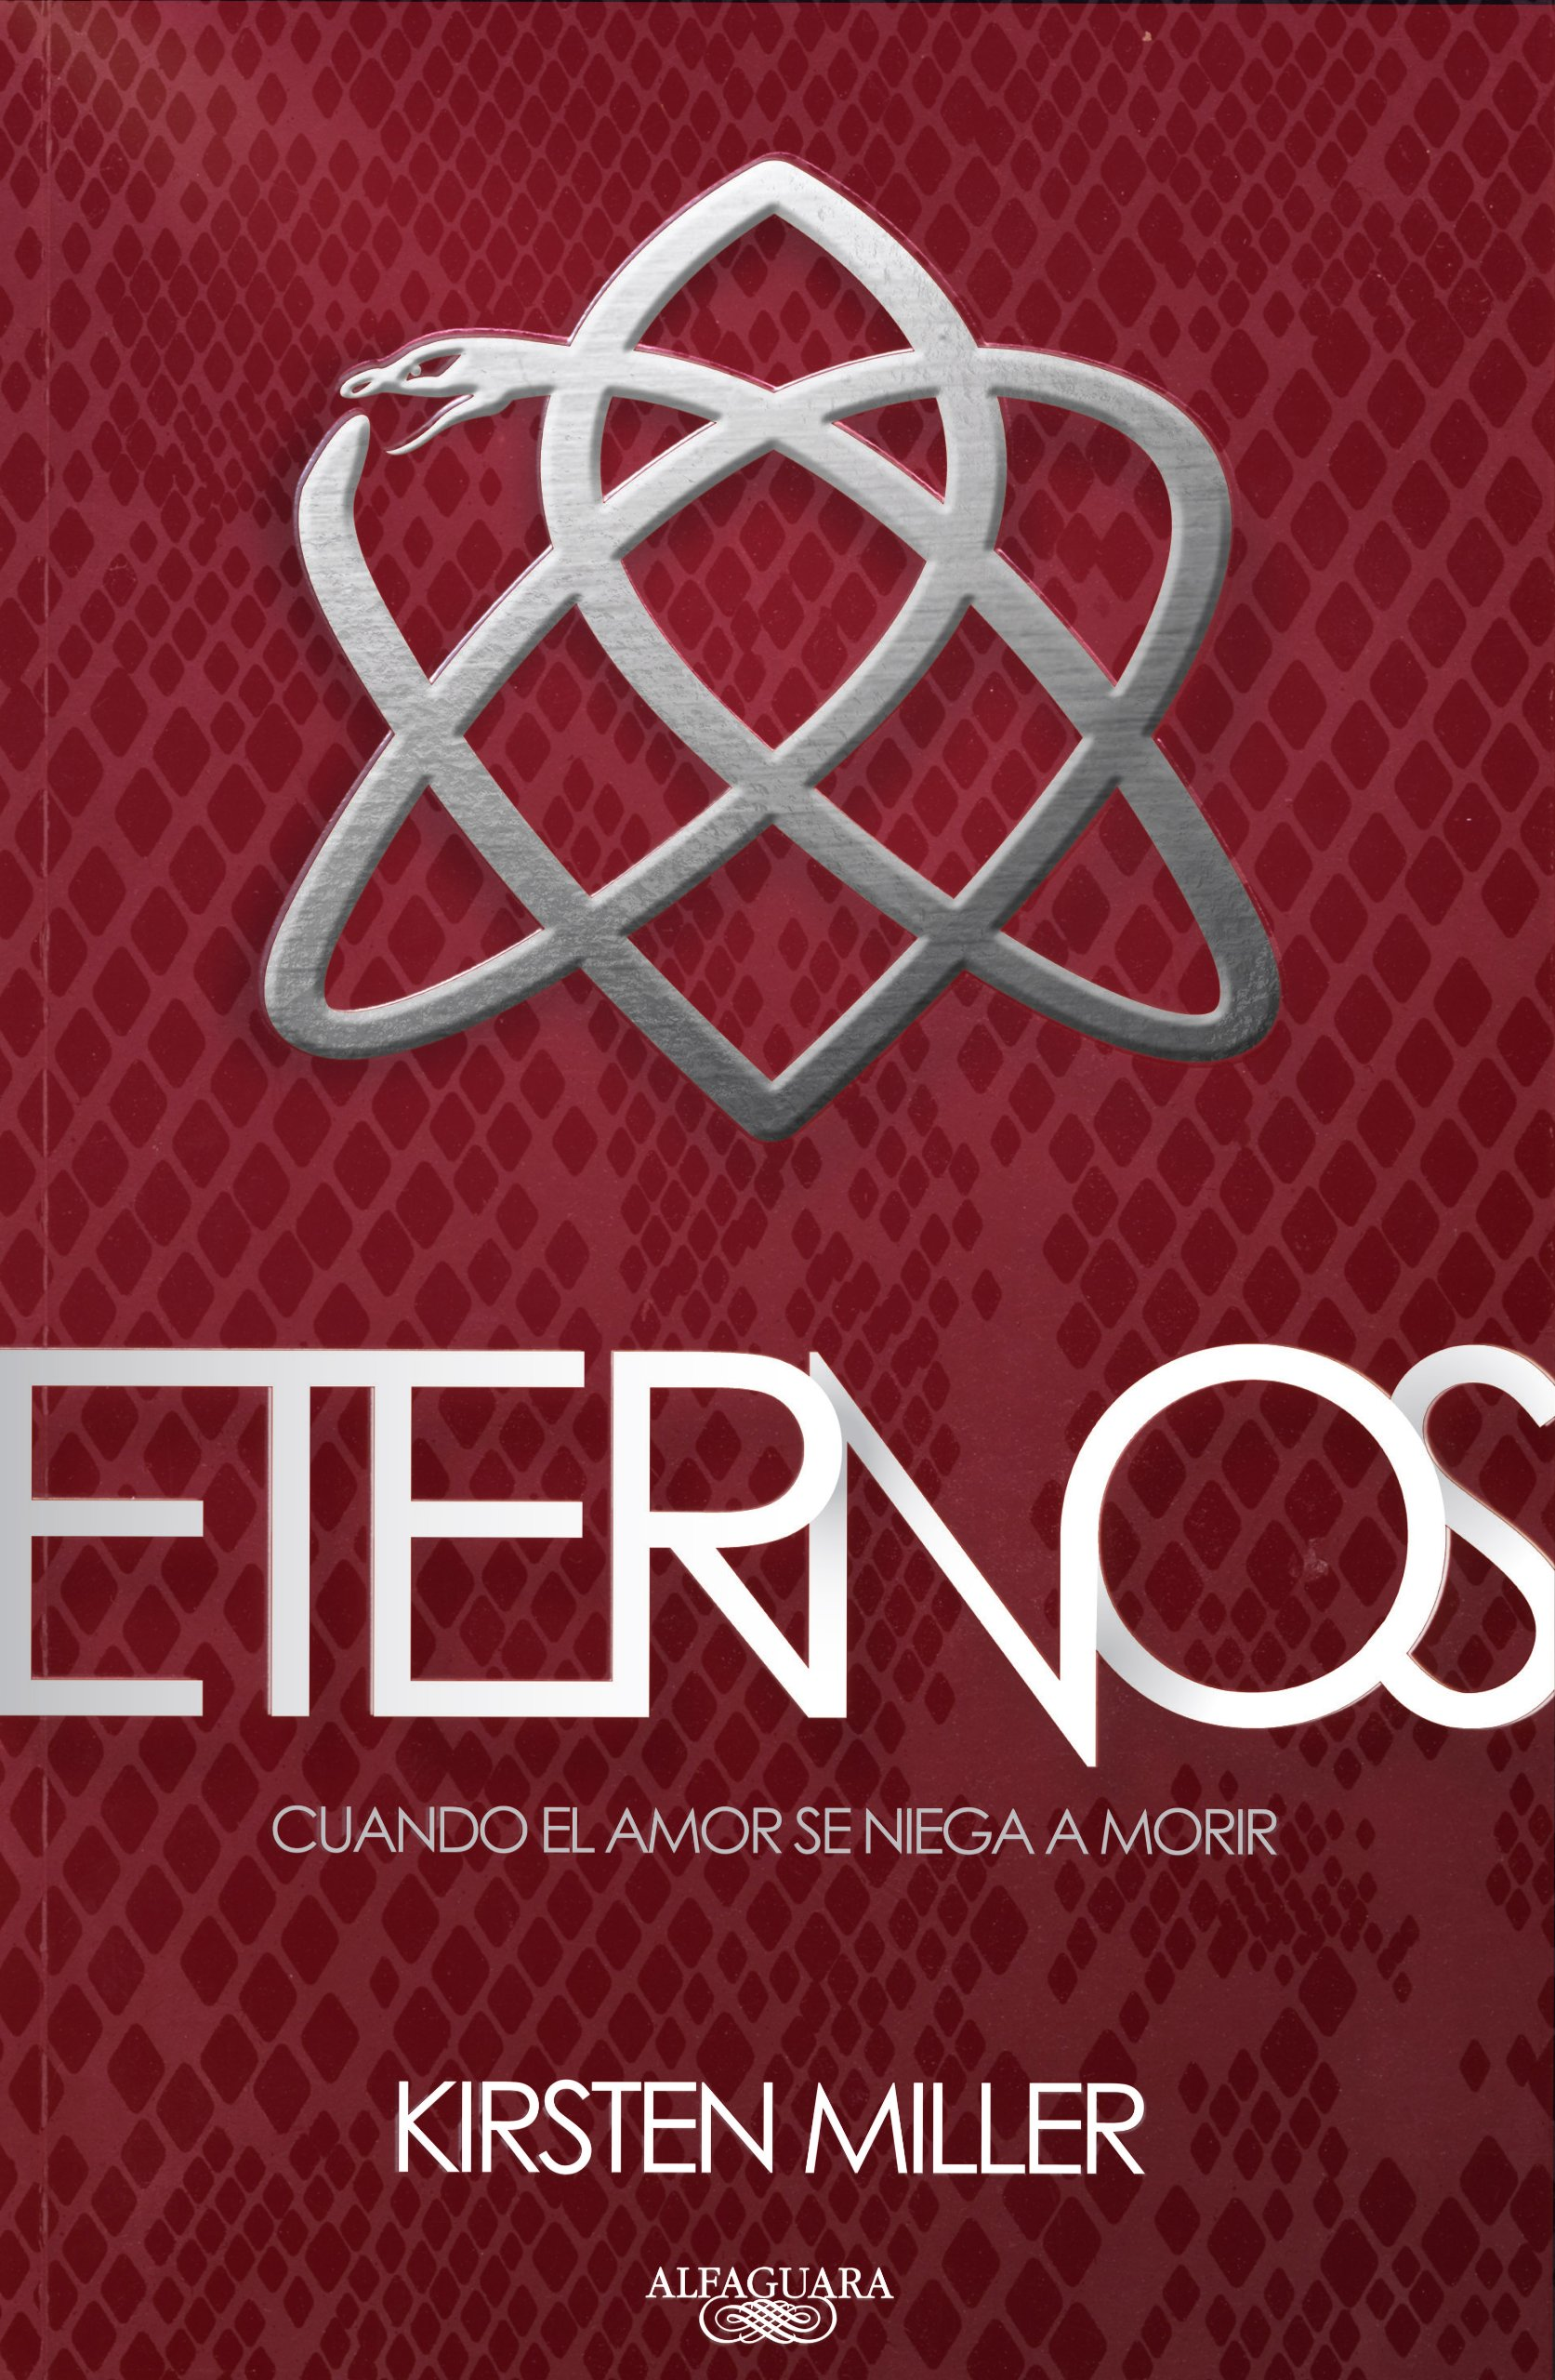 Eternos (The Eteral Ones) (FICCIÓN JUVENIL): Amazon.es: KIRSTEN MILLER: Libros